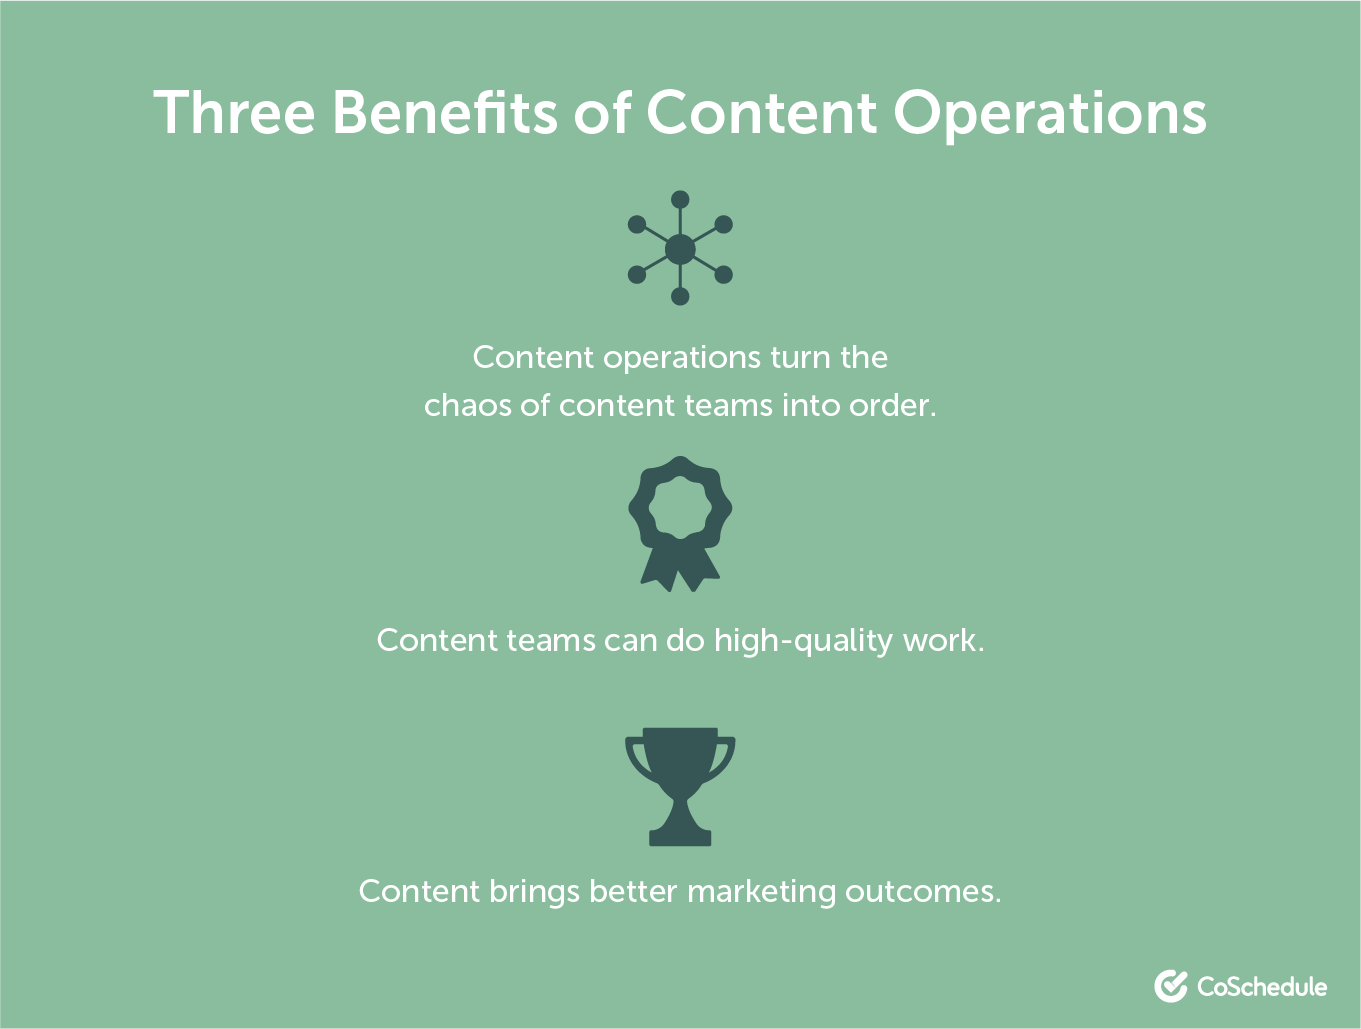 Three benefits to content operations